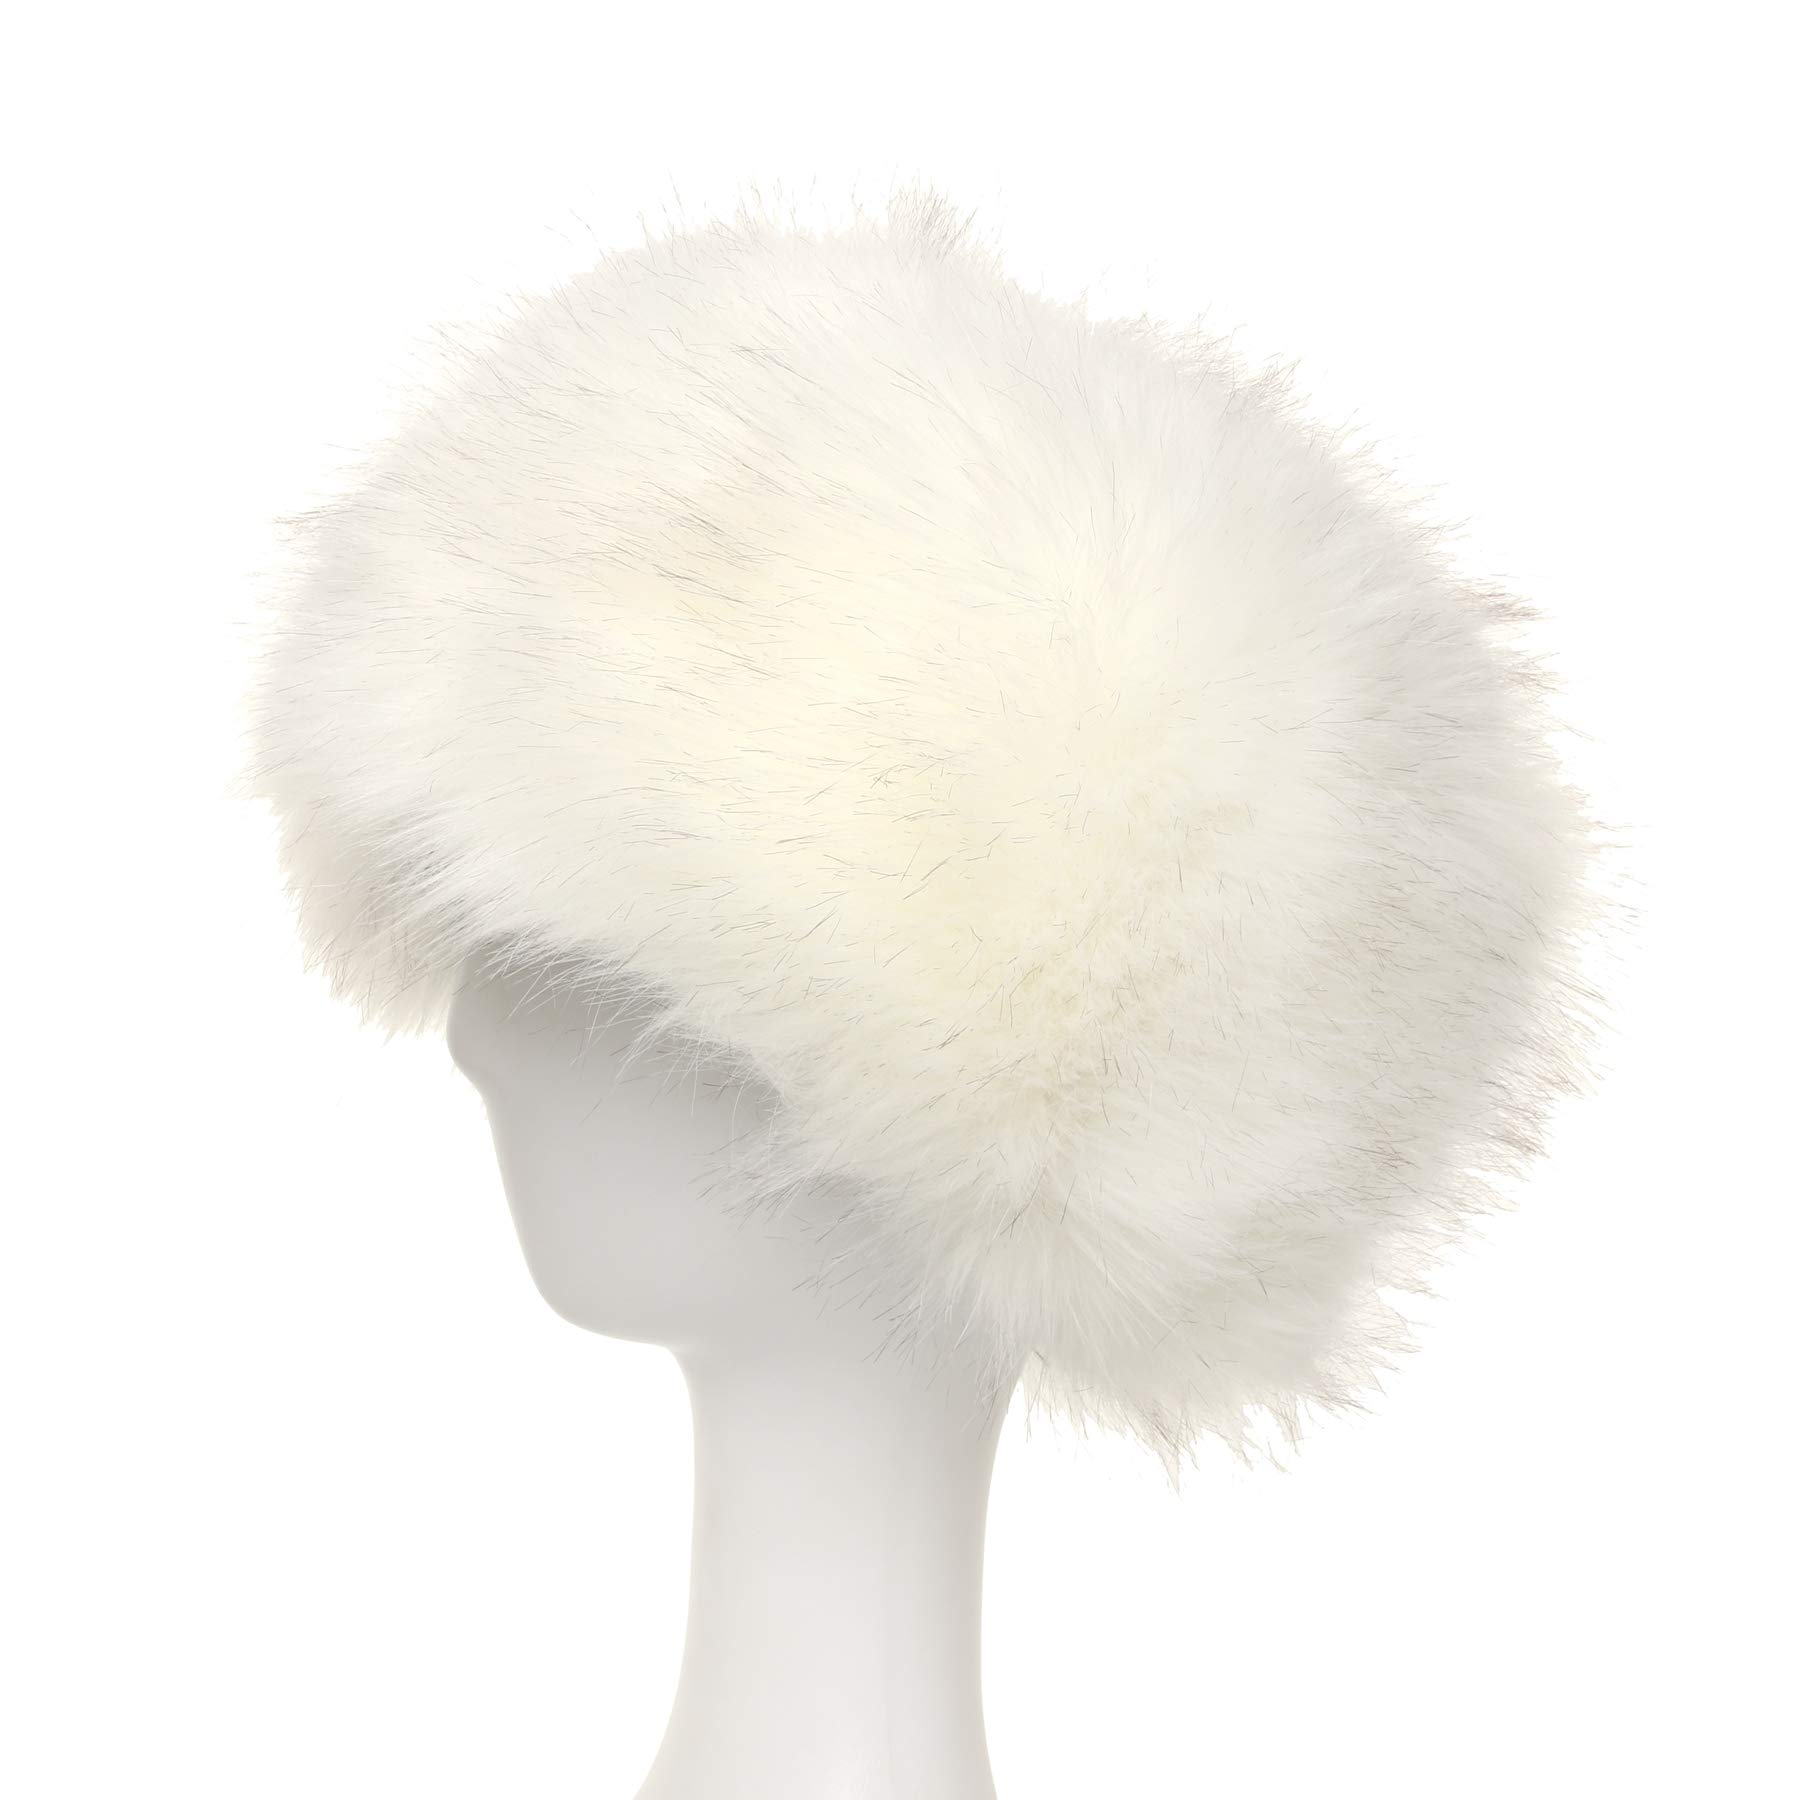 La Carrie Women's Faux Fur Hat for Winter with Stretch Cossack Russion Style White Warm Cap(White)